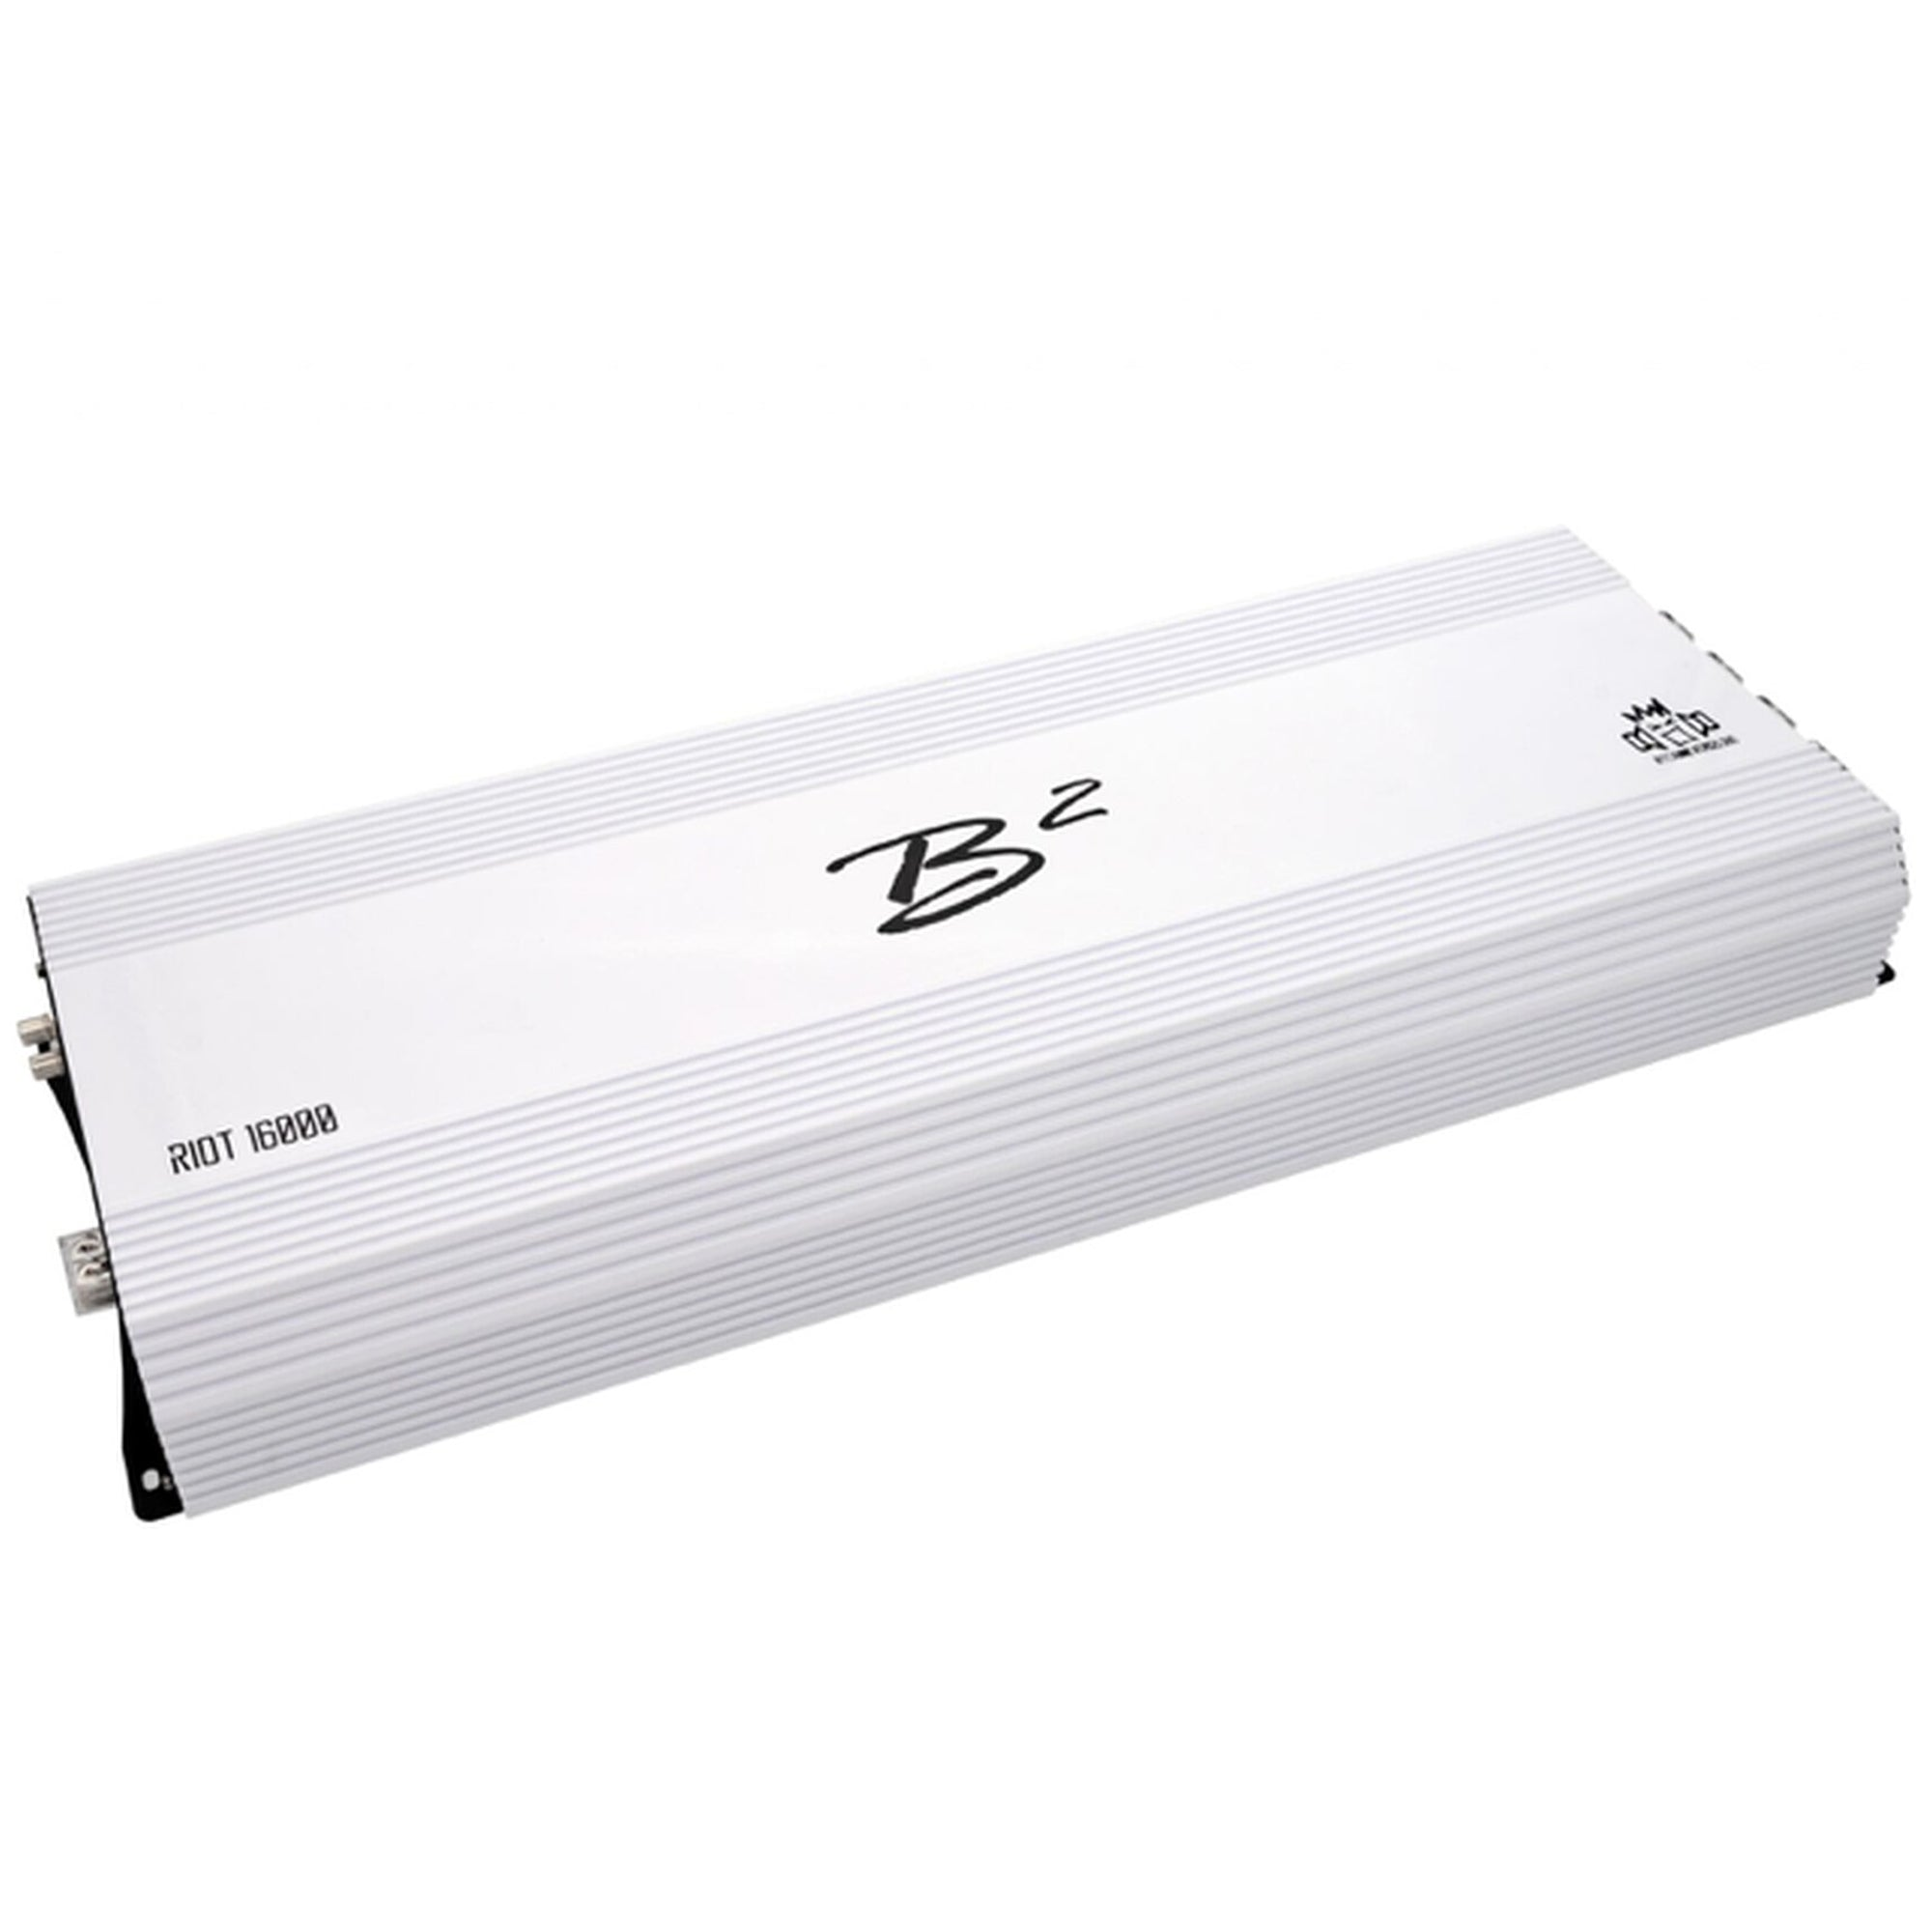 B2 Audio Riot 16,000 Watt Monoblock Amplifier